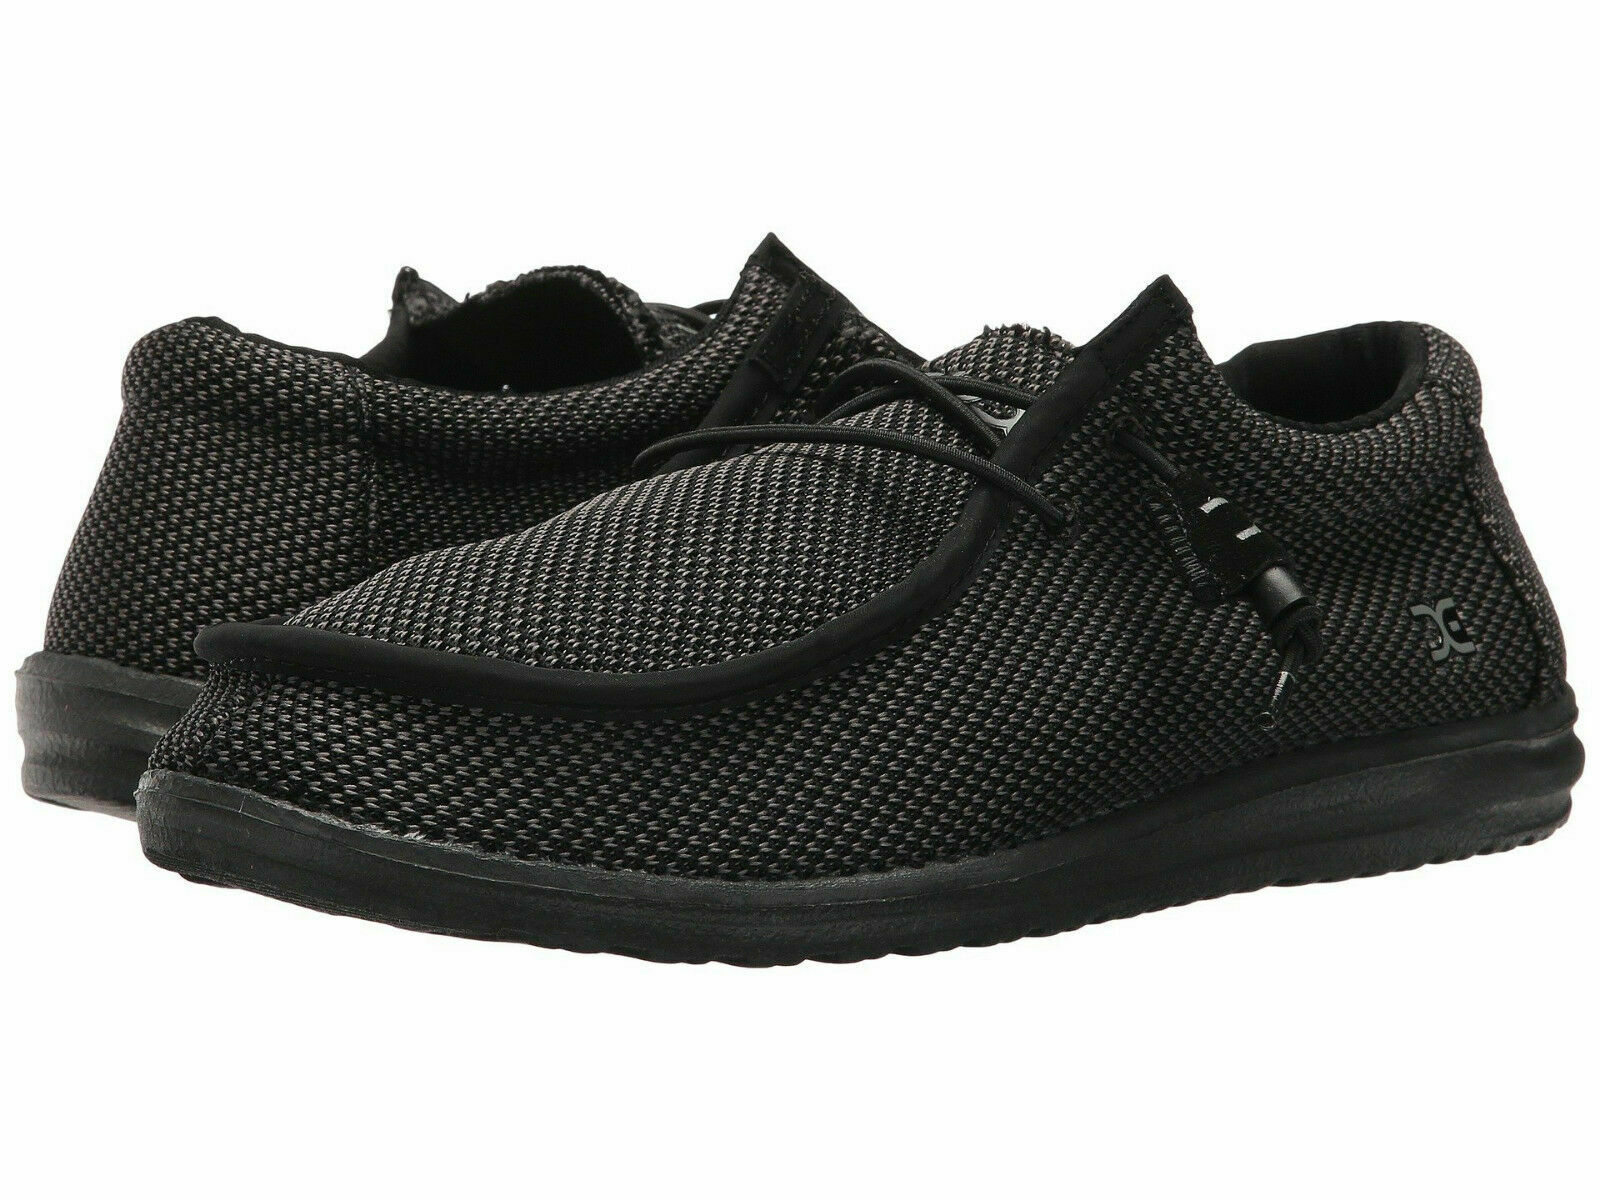 Hey Dude Wally L Sox Men's Shoes Black Comfortable Ligthweight Slip On Casual